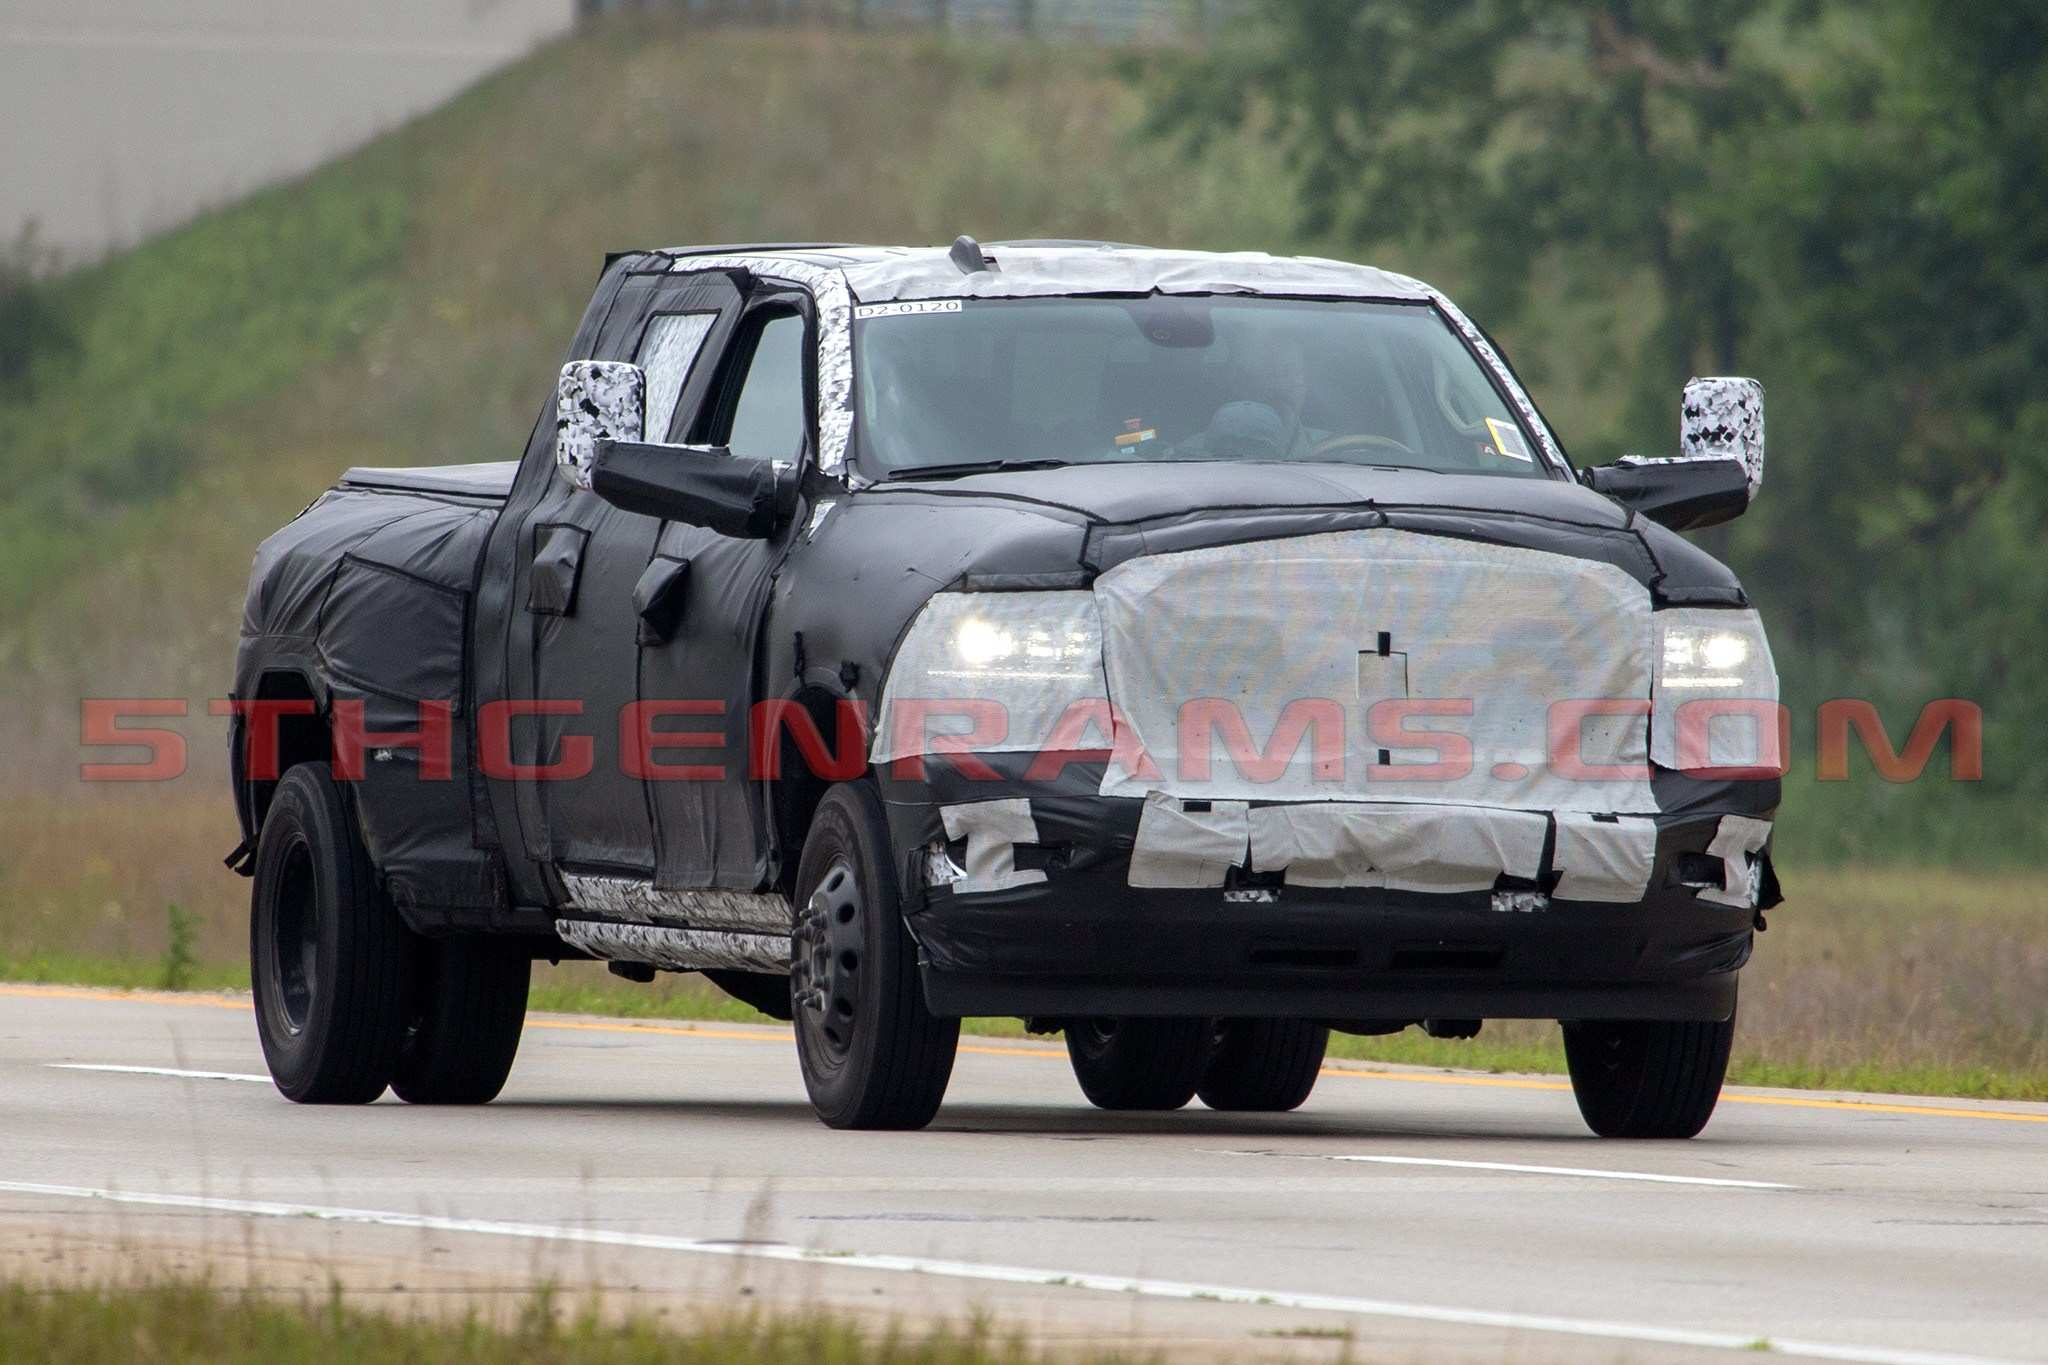 97 The 2020 Dodge Ram 3500 Mega Cab History for 2020 Dodge Ram 3500 Mega Cab